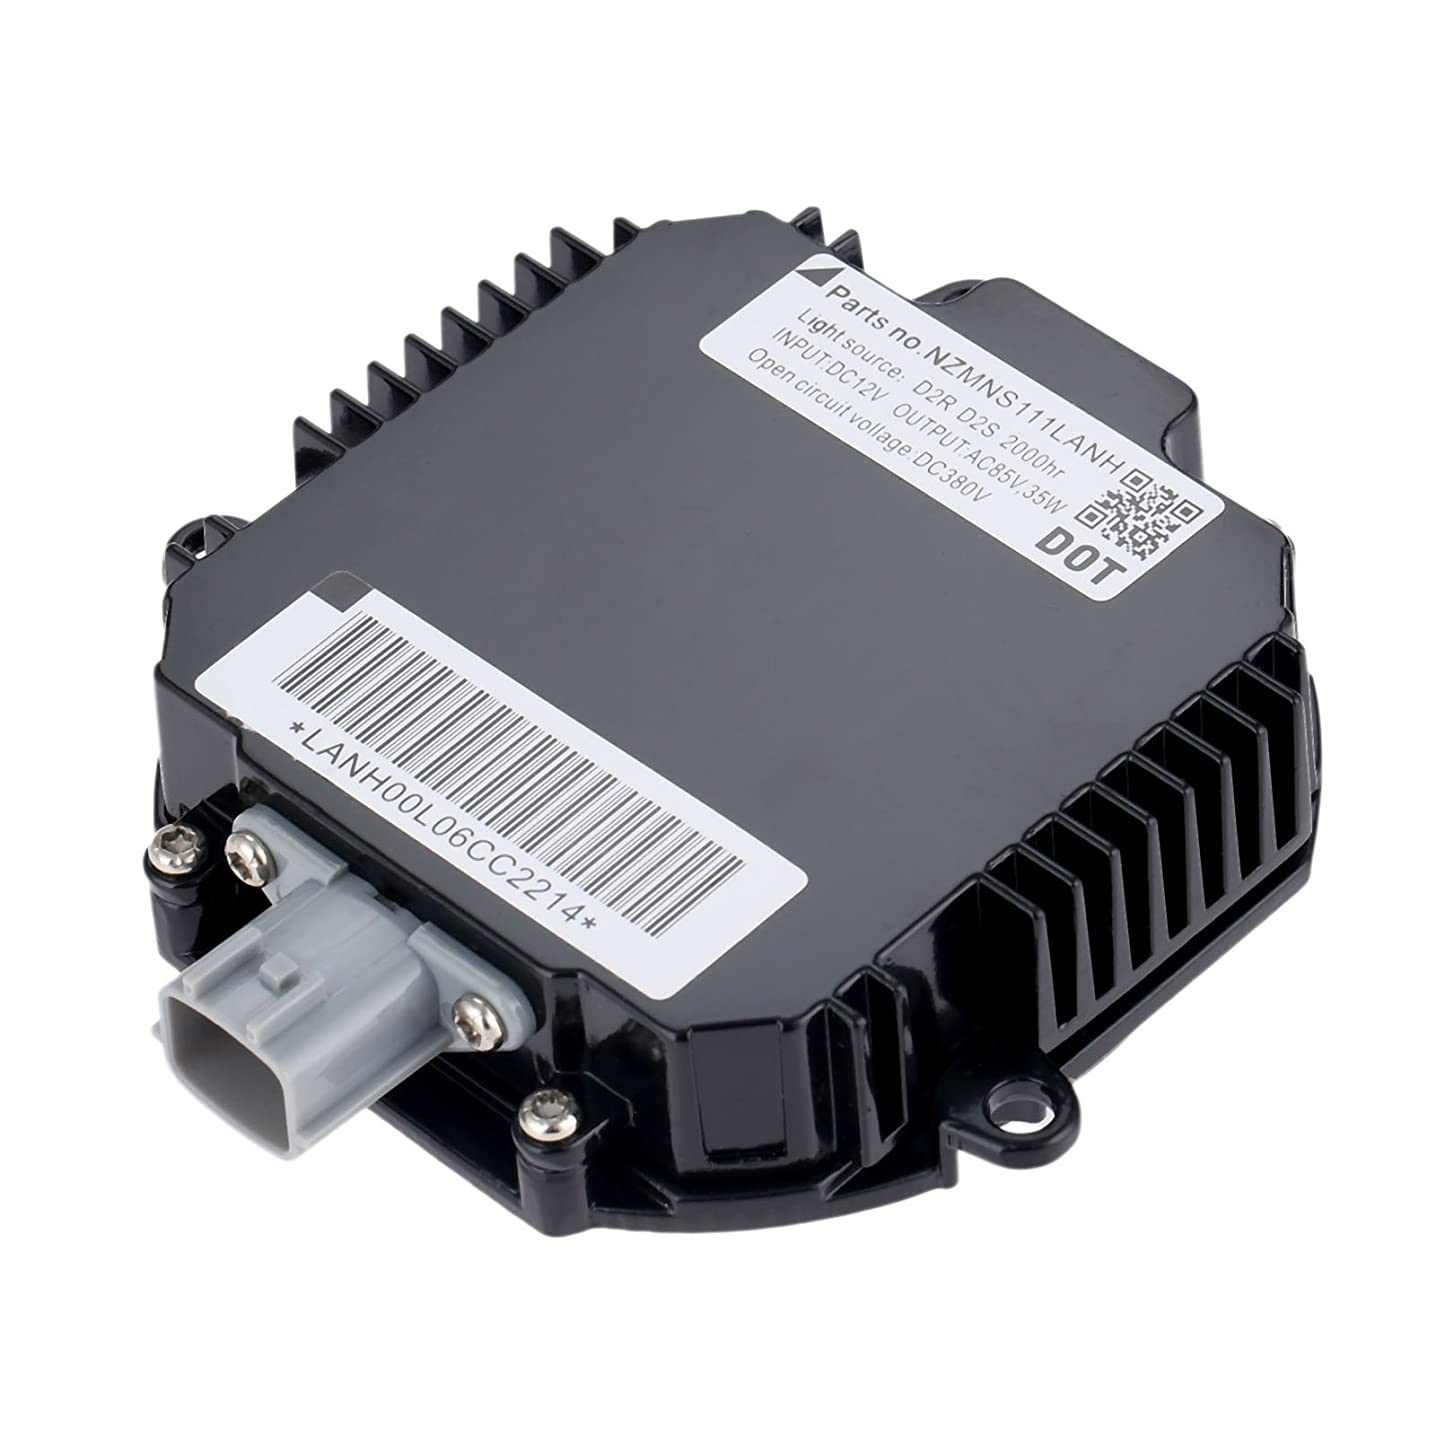 Aupoko Replacement Infiniti and Nissan Xenon HID Ballast - Headlight Control Unit - Replaces NZMNS111LANH, NZMNS111LANA, NZMNS111LBNA, 28474-89904, 28474-89907, 28474-8991A - 6 Years Warranty jgicanzak